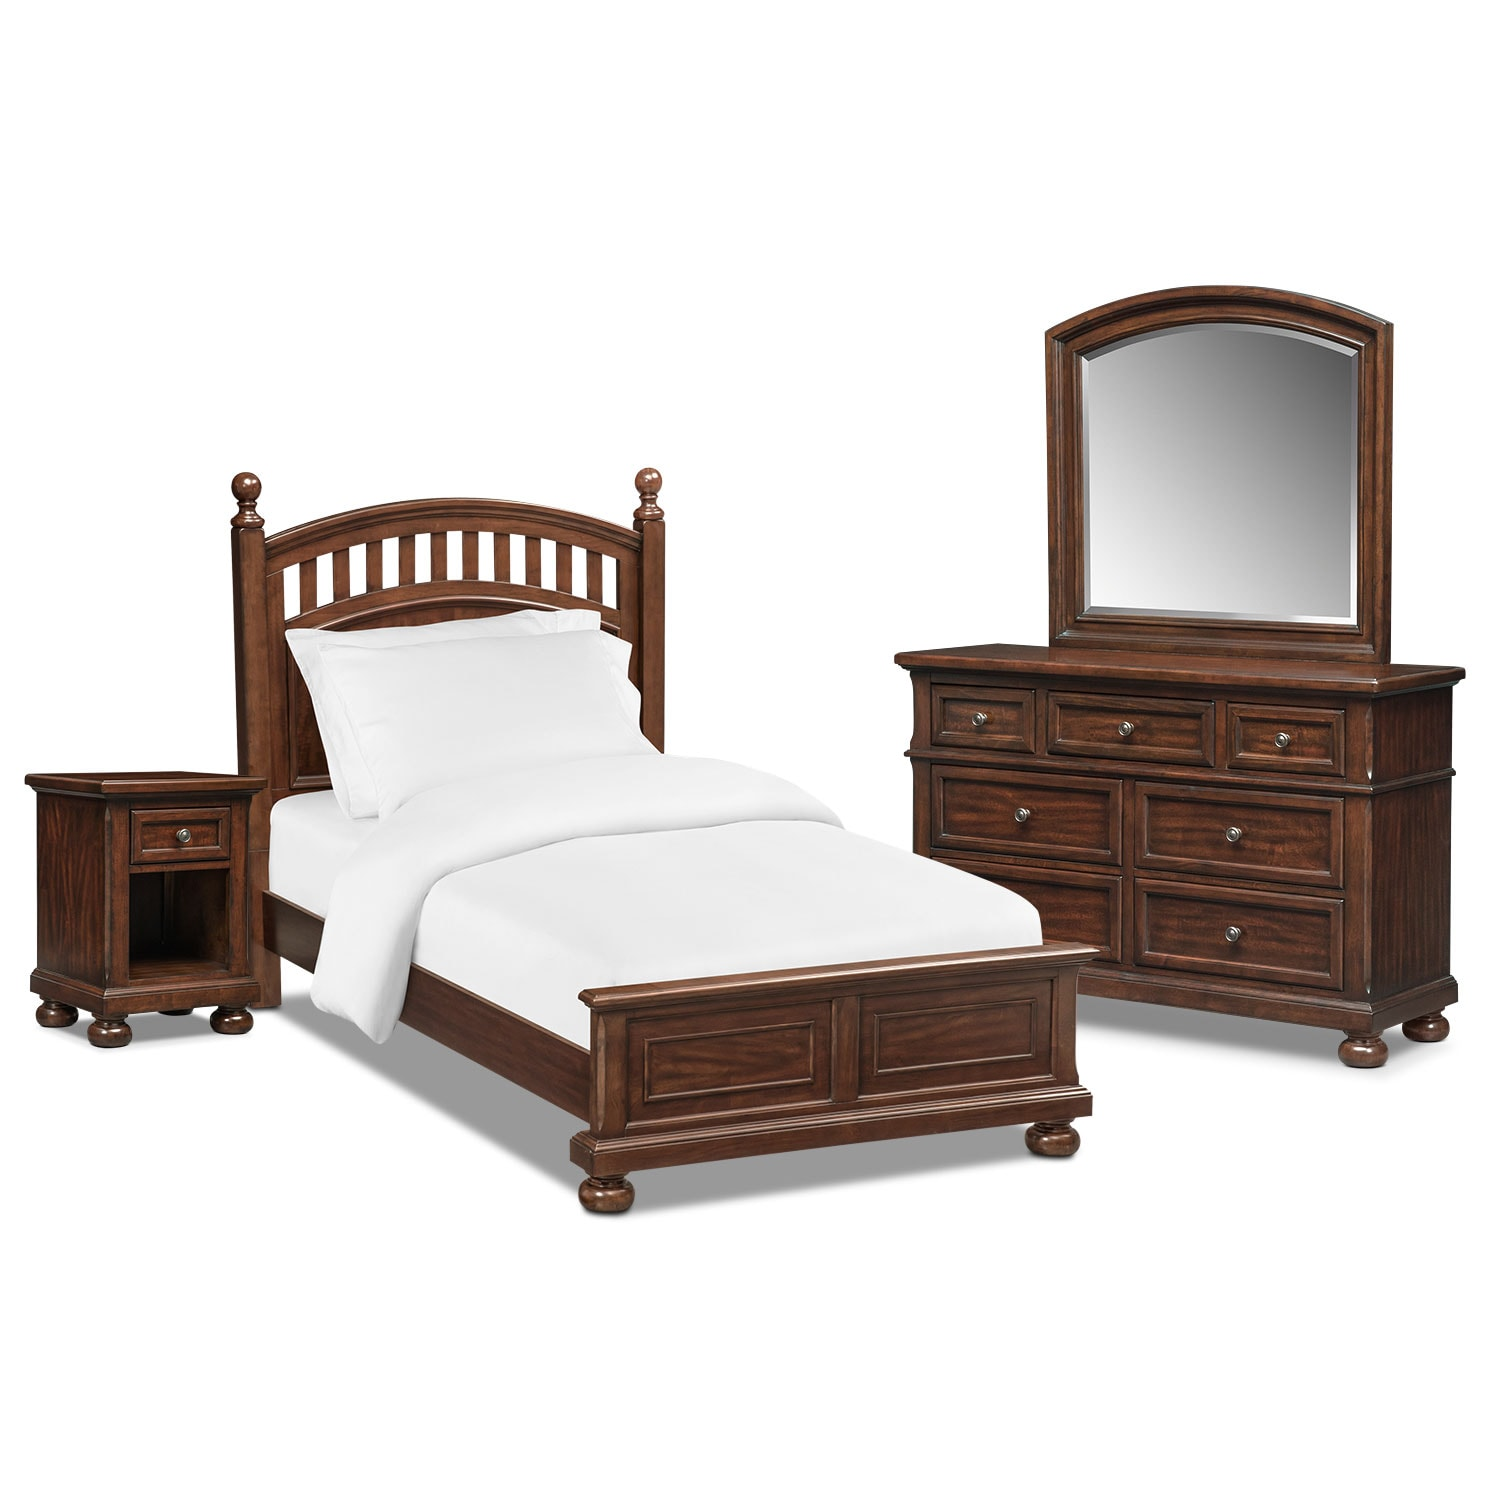 Hanover youth 6 piece twin poster bedroom set cherry for Signature furniture